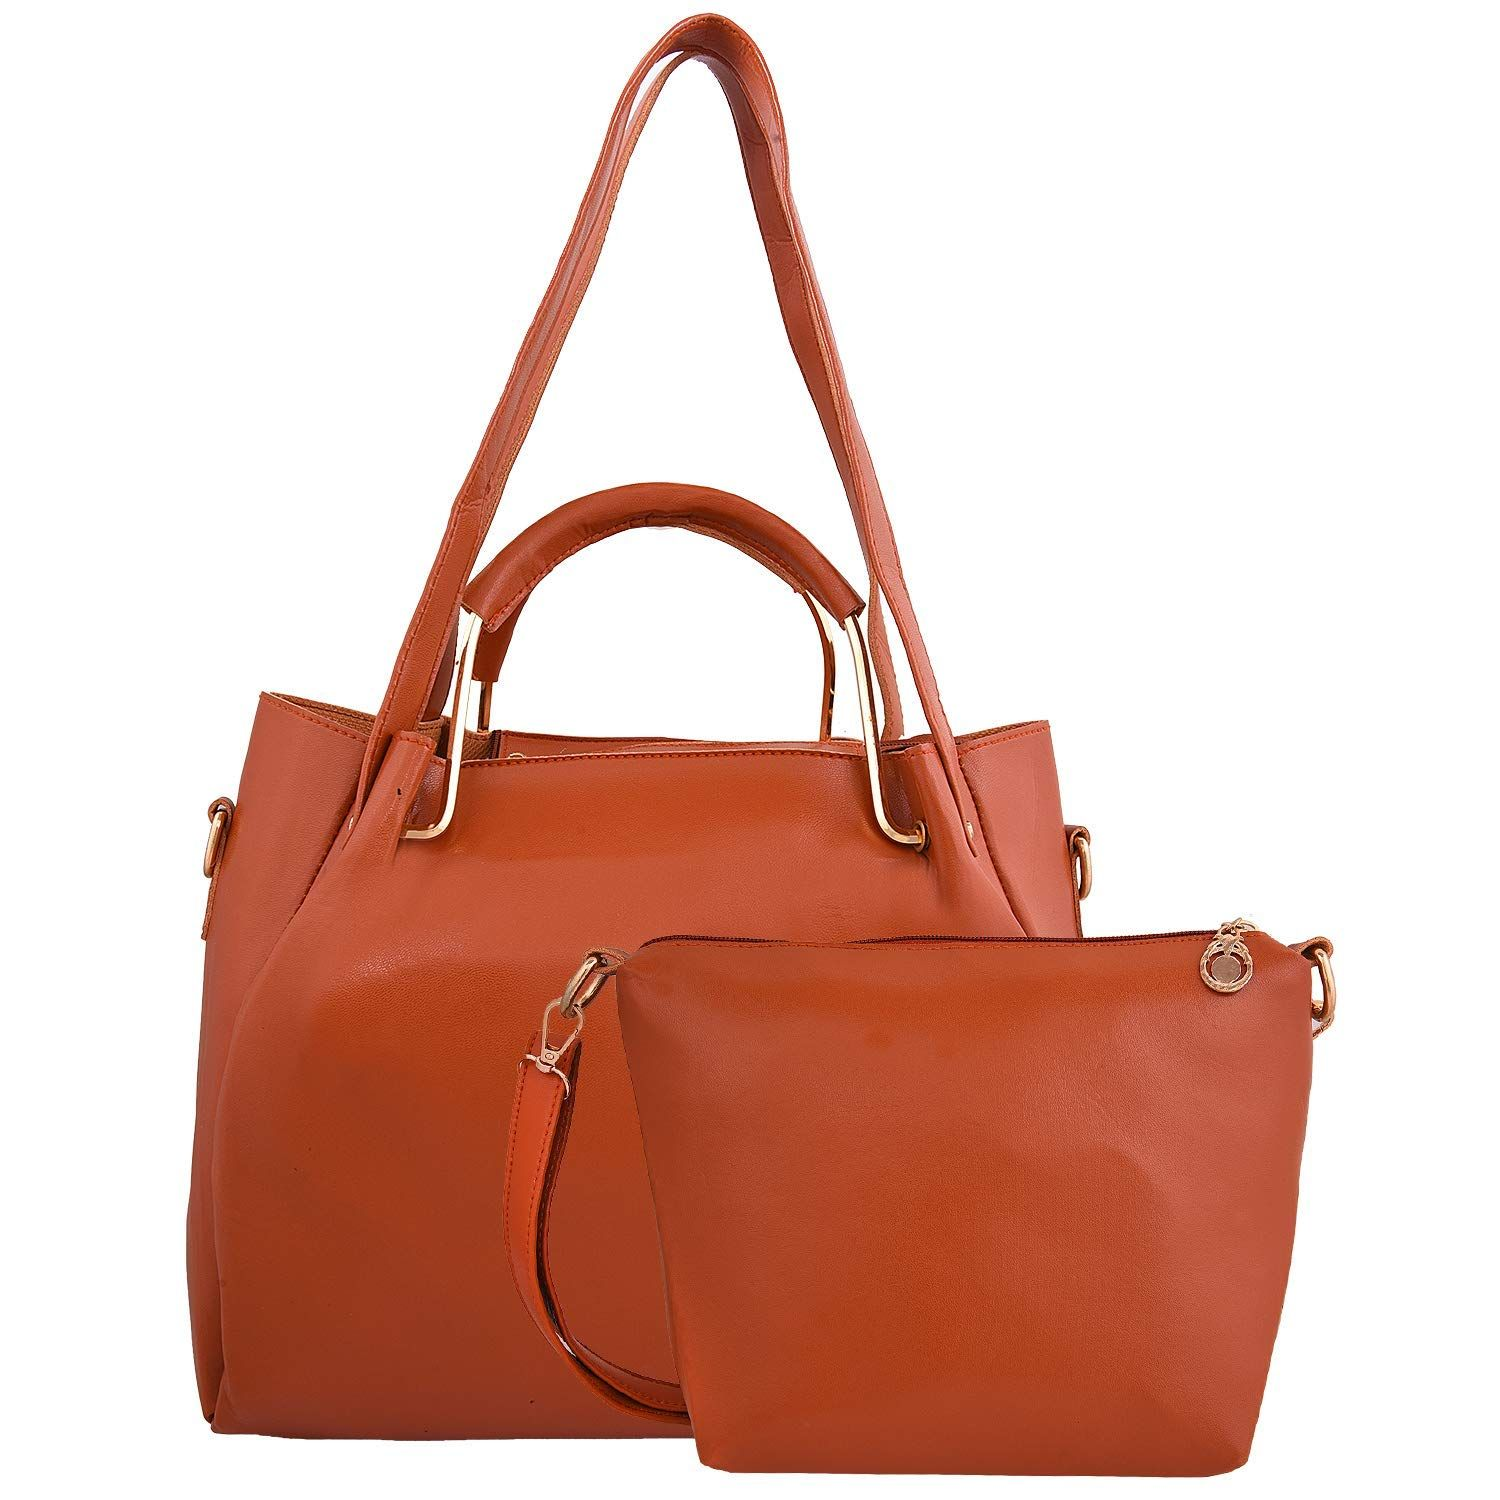 SHOPNOW Bailey New Stylish Designer Combo Of PU Leather Handbag For Women  And Girls College Office Bag And Sling Bag  Amazon.in  Shoes   Handbags ad43efa0f6